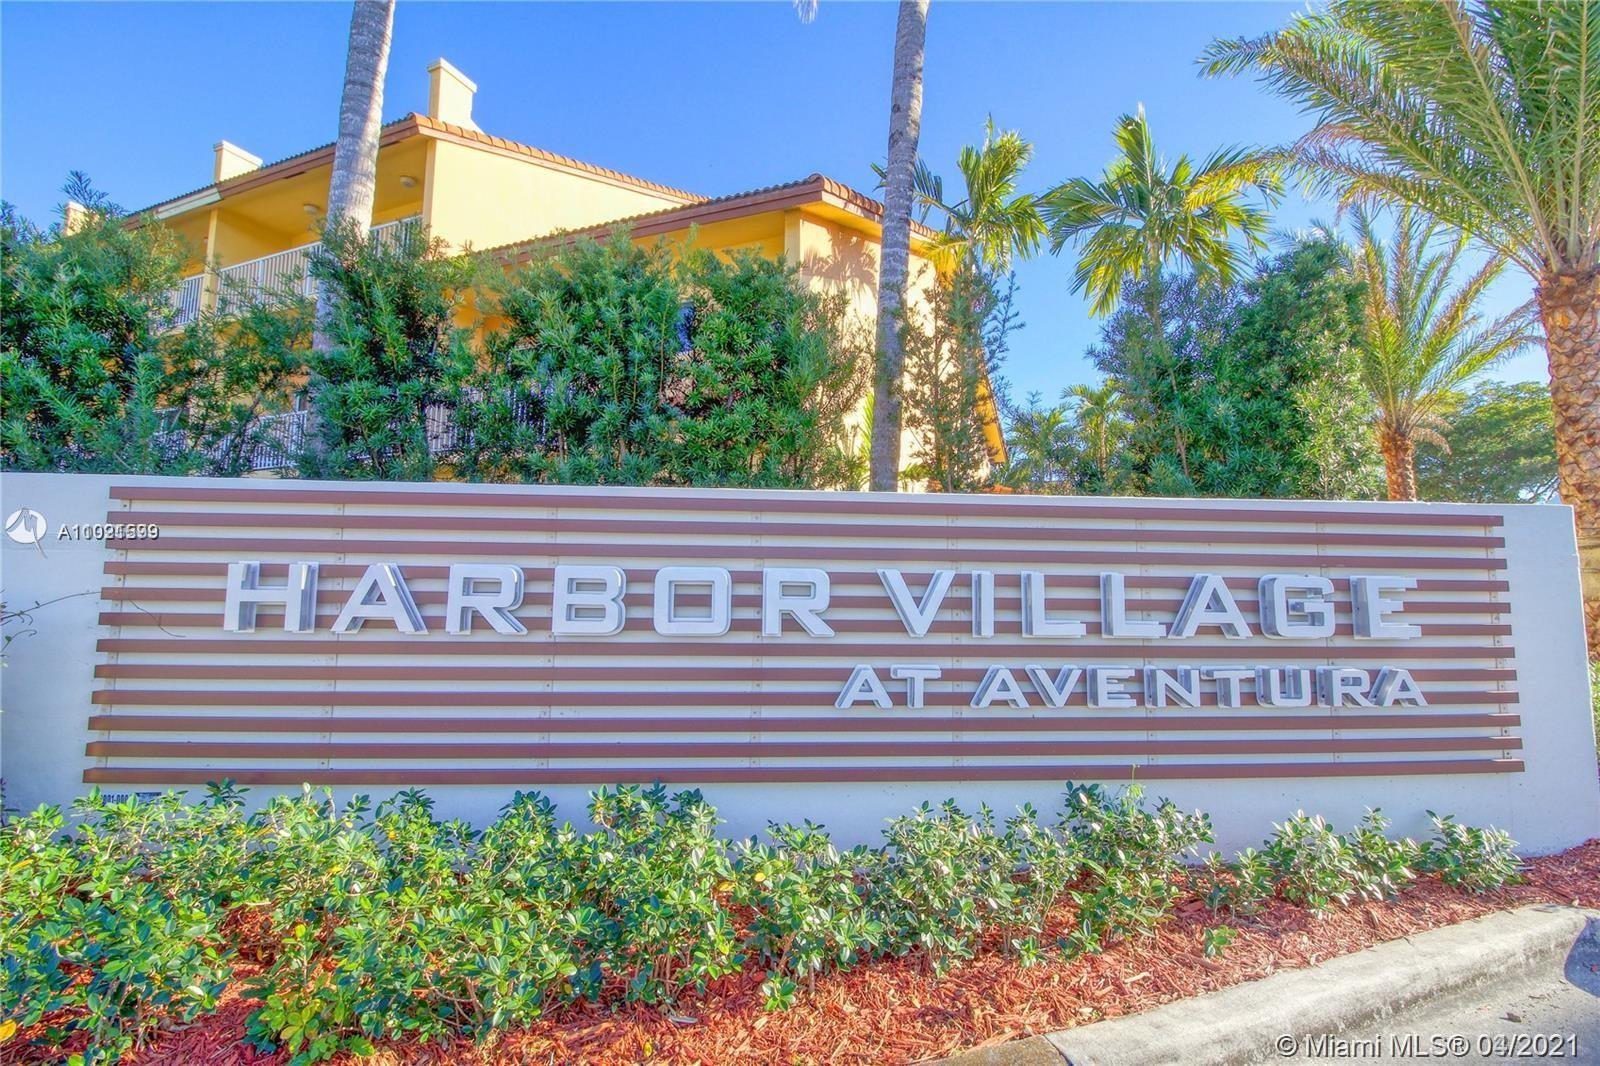 AMAZING TRI- LEVEL TOWNHOUSE IN GATED WATERWAYS SECTION OF AVENTURA. MOST DESIRABLE RENOVATED CAPRI MODEL IN MARINA COVE. 4 BED 3.5 BATH TOWNHOME 2646SF. KITCHEN W/ GRANITE COUNTER TOPS AND STAINLESS STEEL APPLIANCES. DINING AND LIVING ROOM ON MAIN LEVEL. PRIVATE BEDROOM AND BATHROOM ON FIRST LEVEL. CAN BE USED AS GUEST OR LIVE IN QUARTERS. MARINA COVE FEATURES AN UPSCALE FAMILY STYLE LIVING. QUIET COMMUNITY WITH GREAT NEIGHBORS. JUST STEPS AWAY FROM THE WATERWAY MARINA, GUEST PARKING AND PRIVATE VIEW OF COMMUNITY POOL. GREAT LOCATION IN AVENTURA MALL, WALK TO WHOLE FOODS MARKET AND TARGET SUPER STORE. NEW CITY OF AVENTURA CHARTER HIGH SCHOOL IS PLANNED WITHIN WALKING DISTANCE. PET FRIENDLY, CLOSE TO AVENTURA PARKS, SUNNY ISLES BEACH AND GULFSTREAM SHOPS.